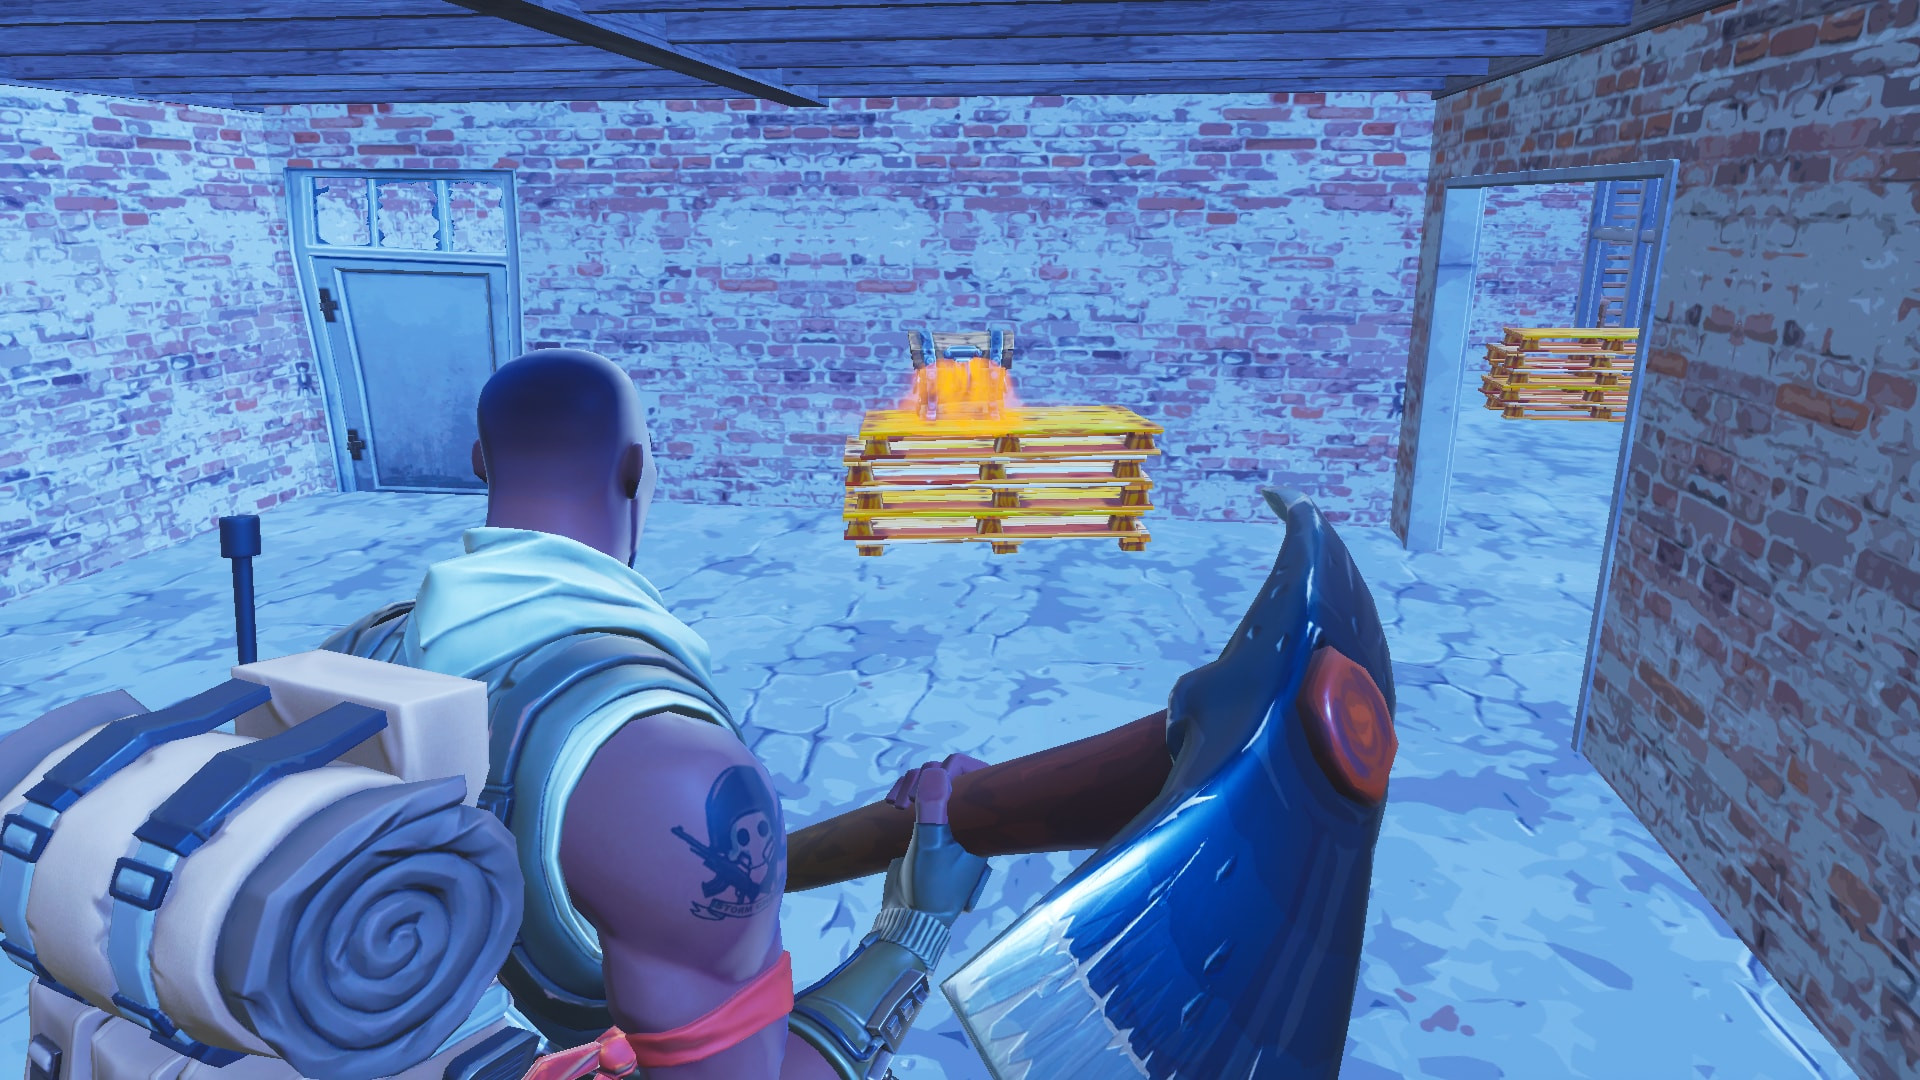 Spot Chests Location 21 in Tilted Tower | Fortnite - zilliongamer